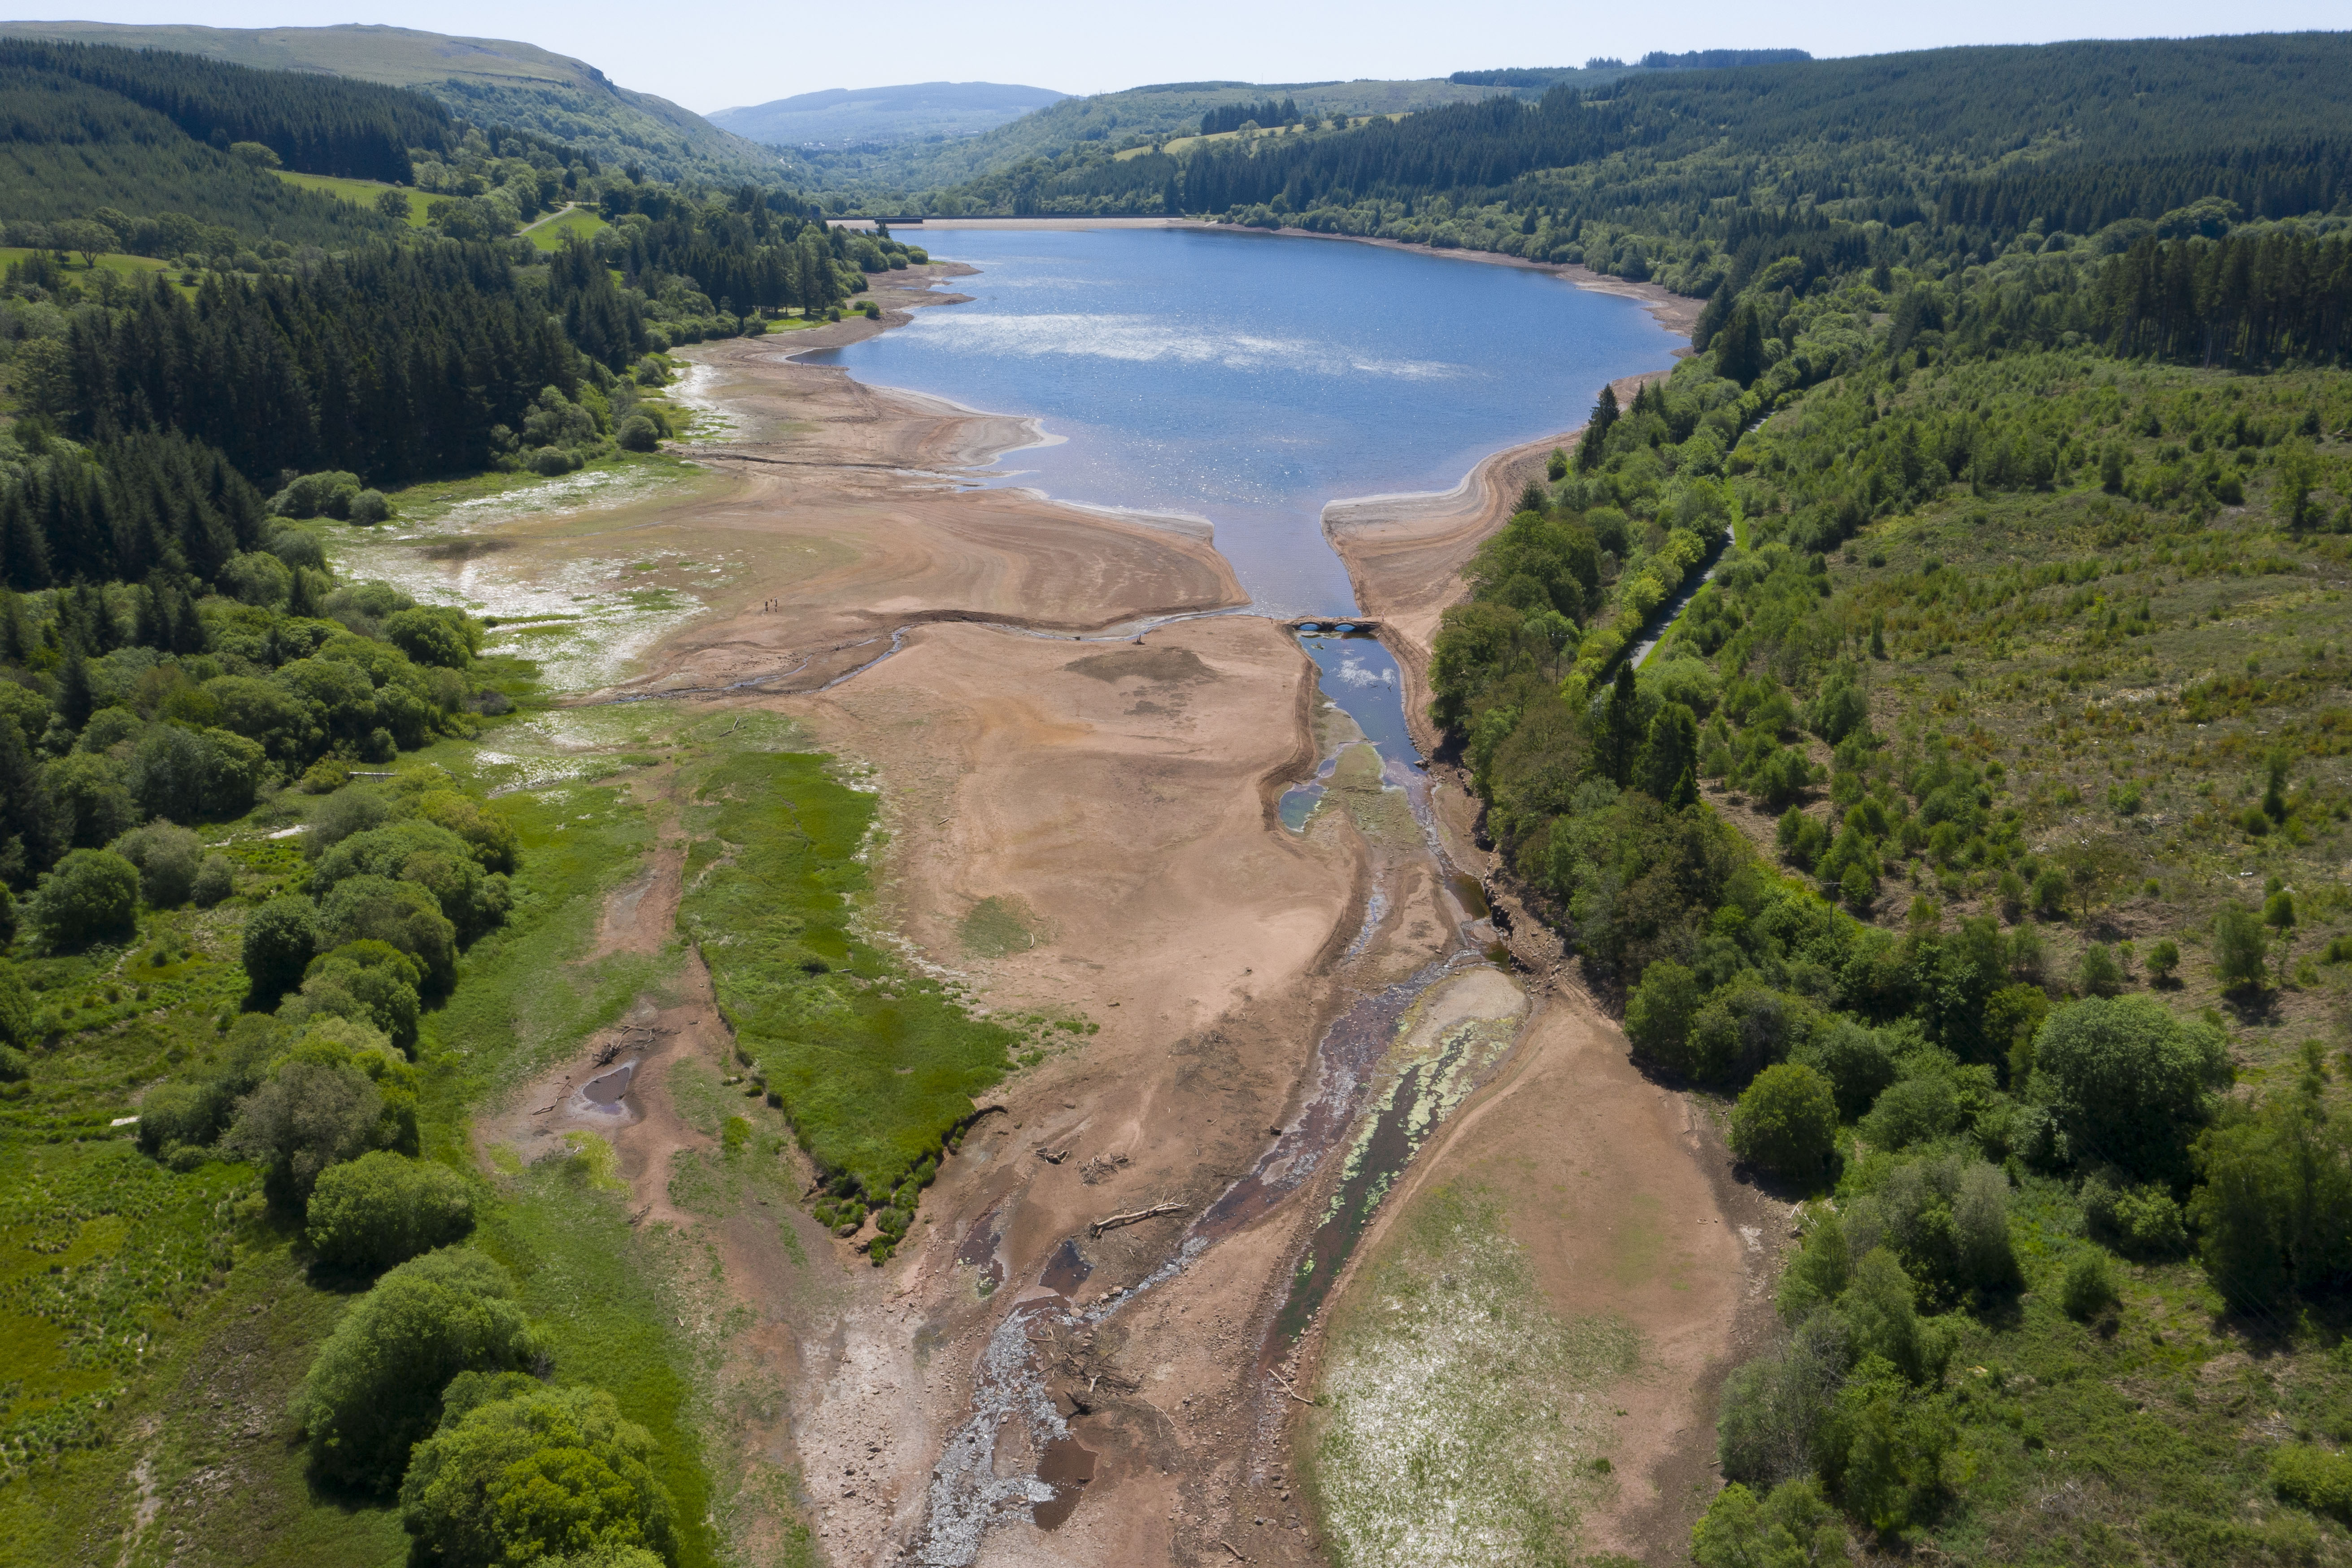 MERTHYR TYDFIL, UNITED KINGDOM - MAY 29: An aerial view of low water levels in the Llwyn-on reservoir in Taf Fawr valley on May 29, 2020 in Merthyr Tydfil, United Kingdom. The Met Office have said May is on course to be the driest in 124 years with only 14.3mm of rain since the month began - 17% of what is normally expected. (Photo by Matthew Horwood/Getty Images)